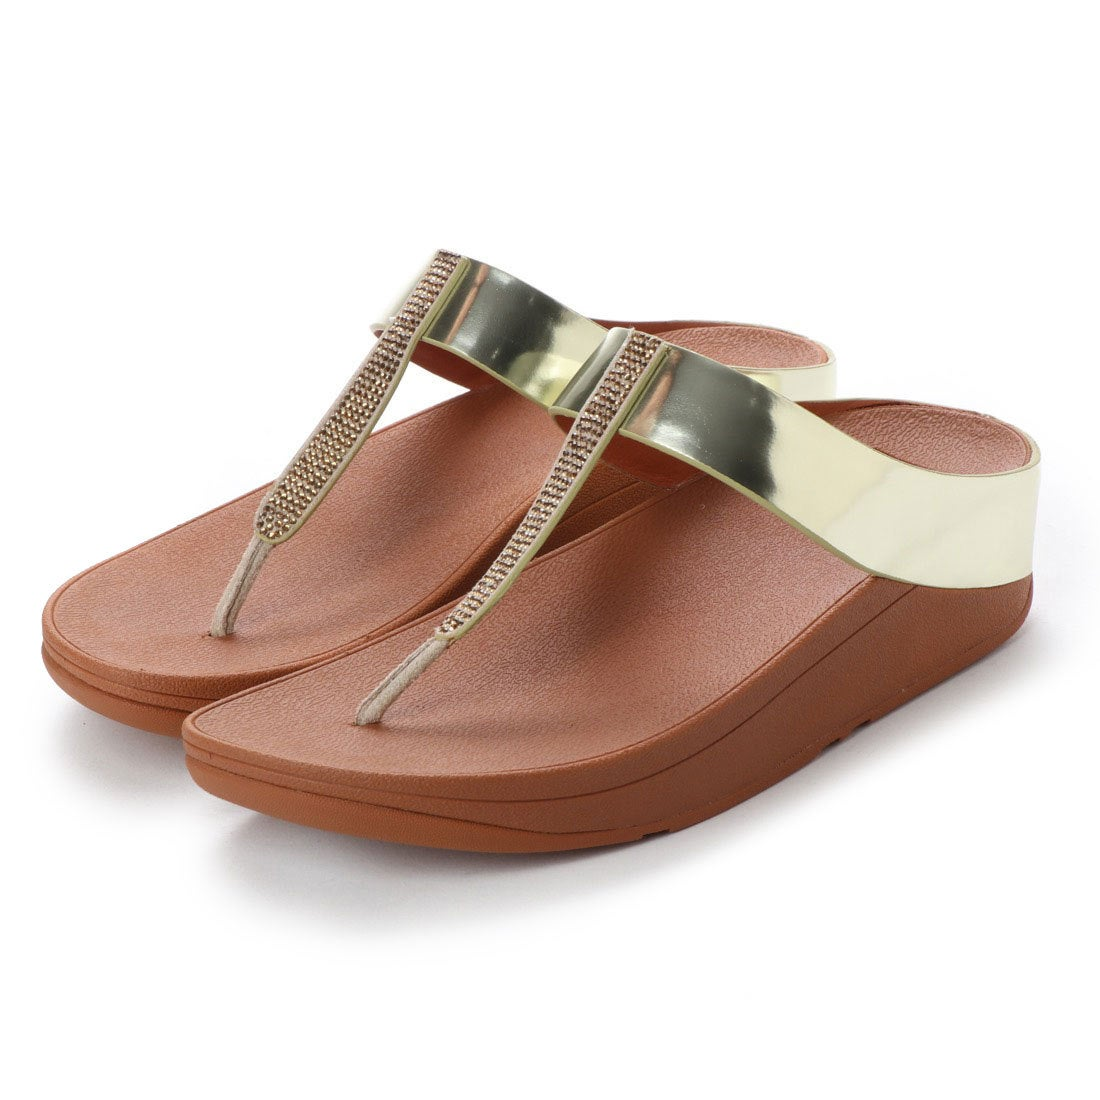 8af6858b0 fitflop フィットフロップ FitFlop FINO CRYSTAL TOE-THONG SANDALS (Gold) -アウトレット通販  ロコレット (LOCOLET)